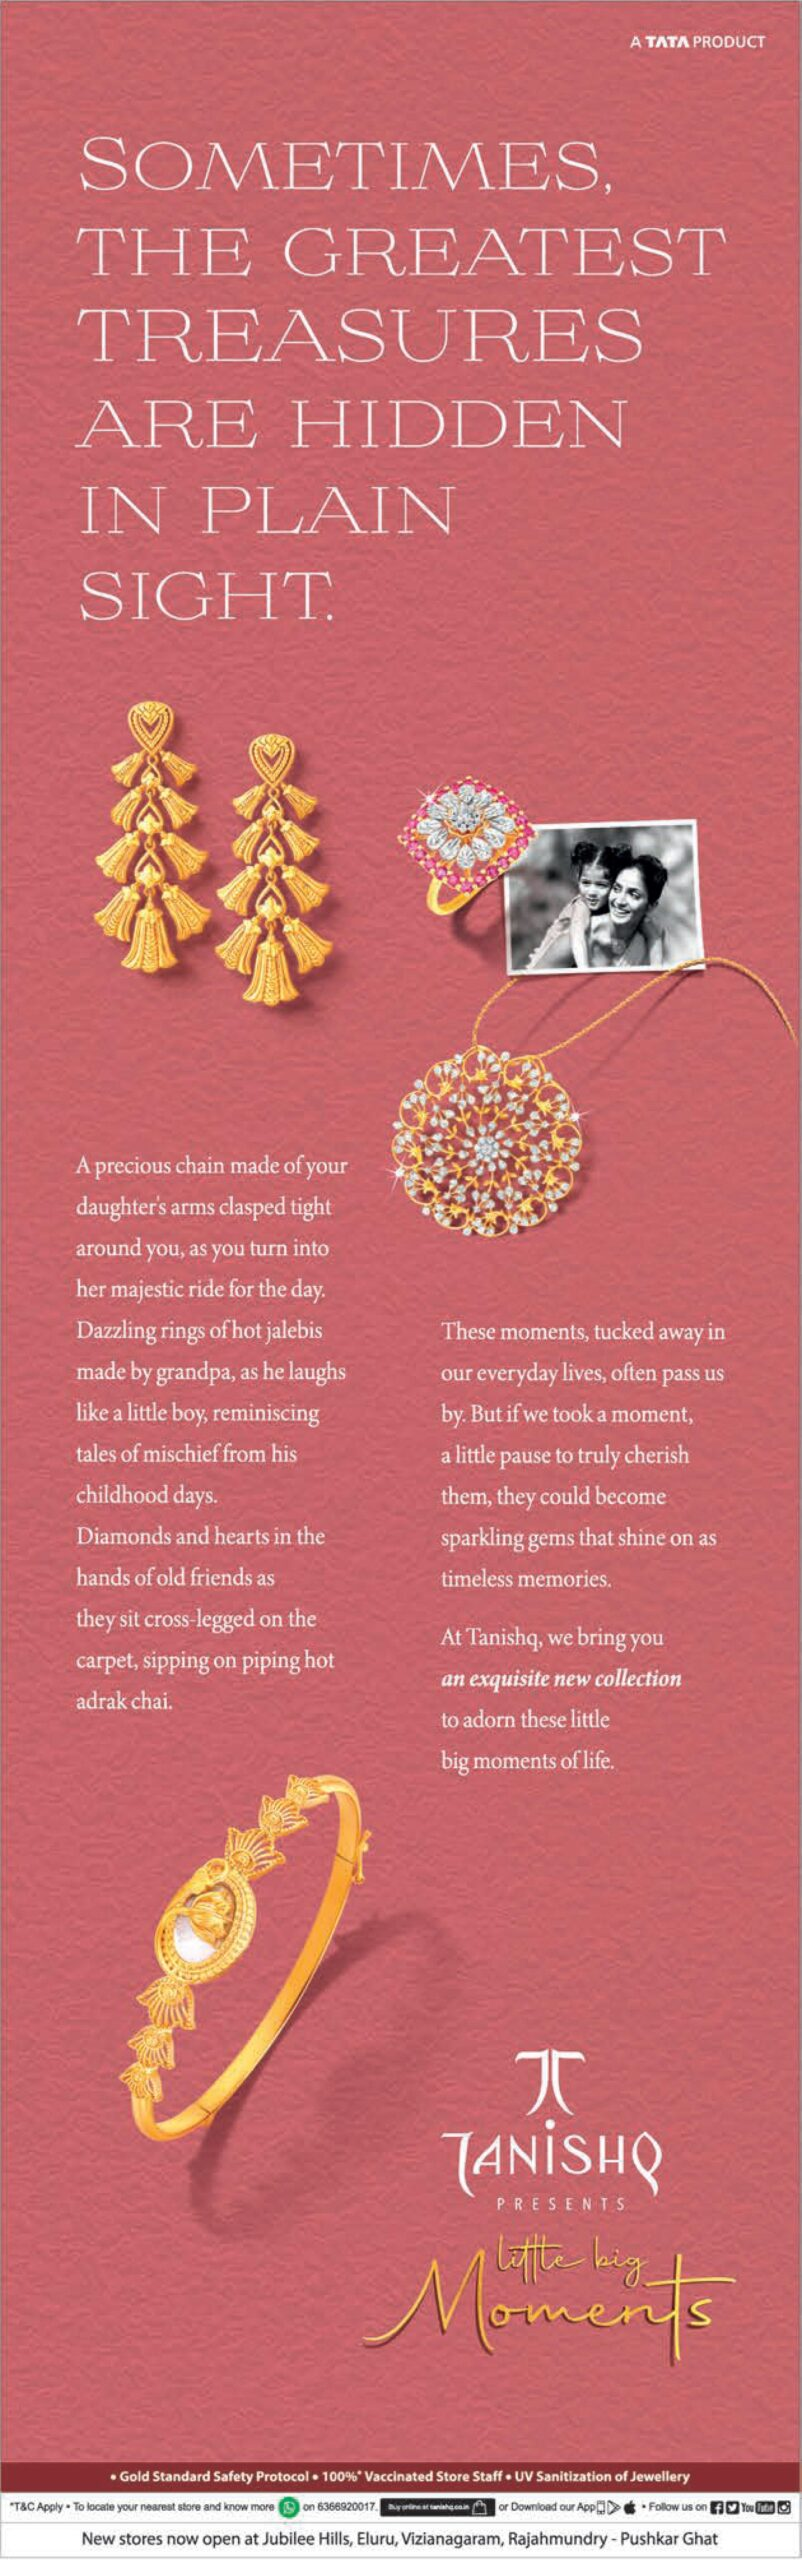 tanishq-presents-little-big-moments-exquisite-new-collection-ad-deccan-chronicle-9-7-2021